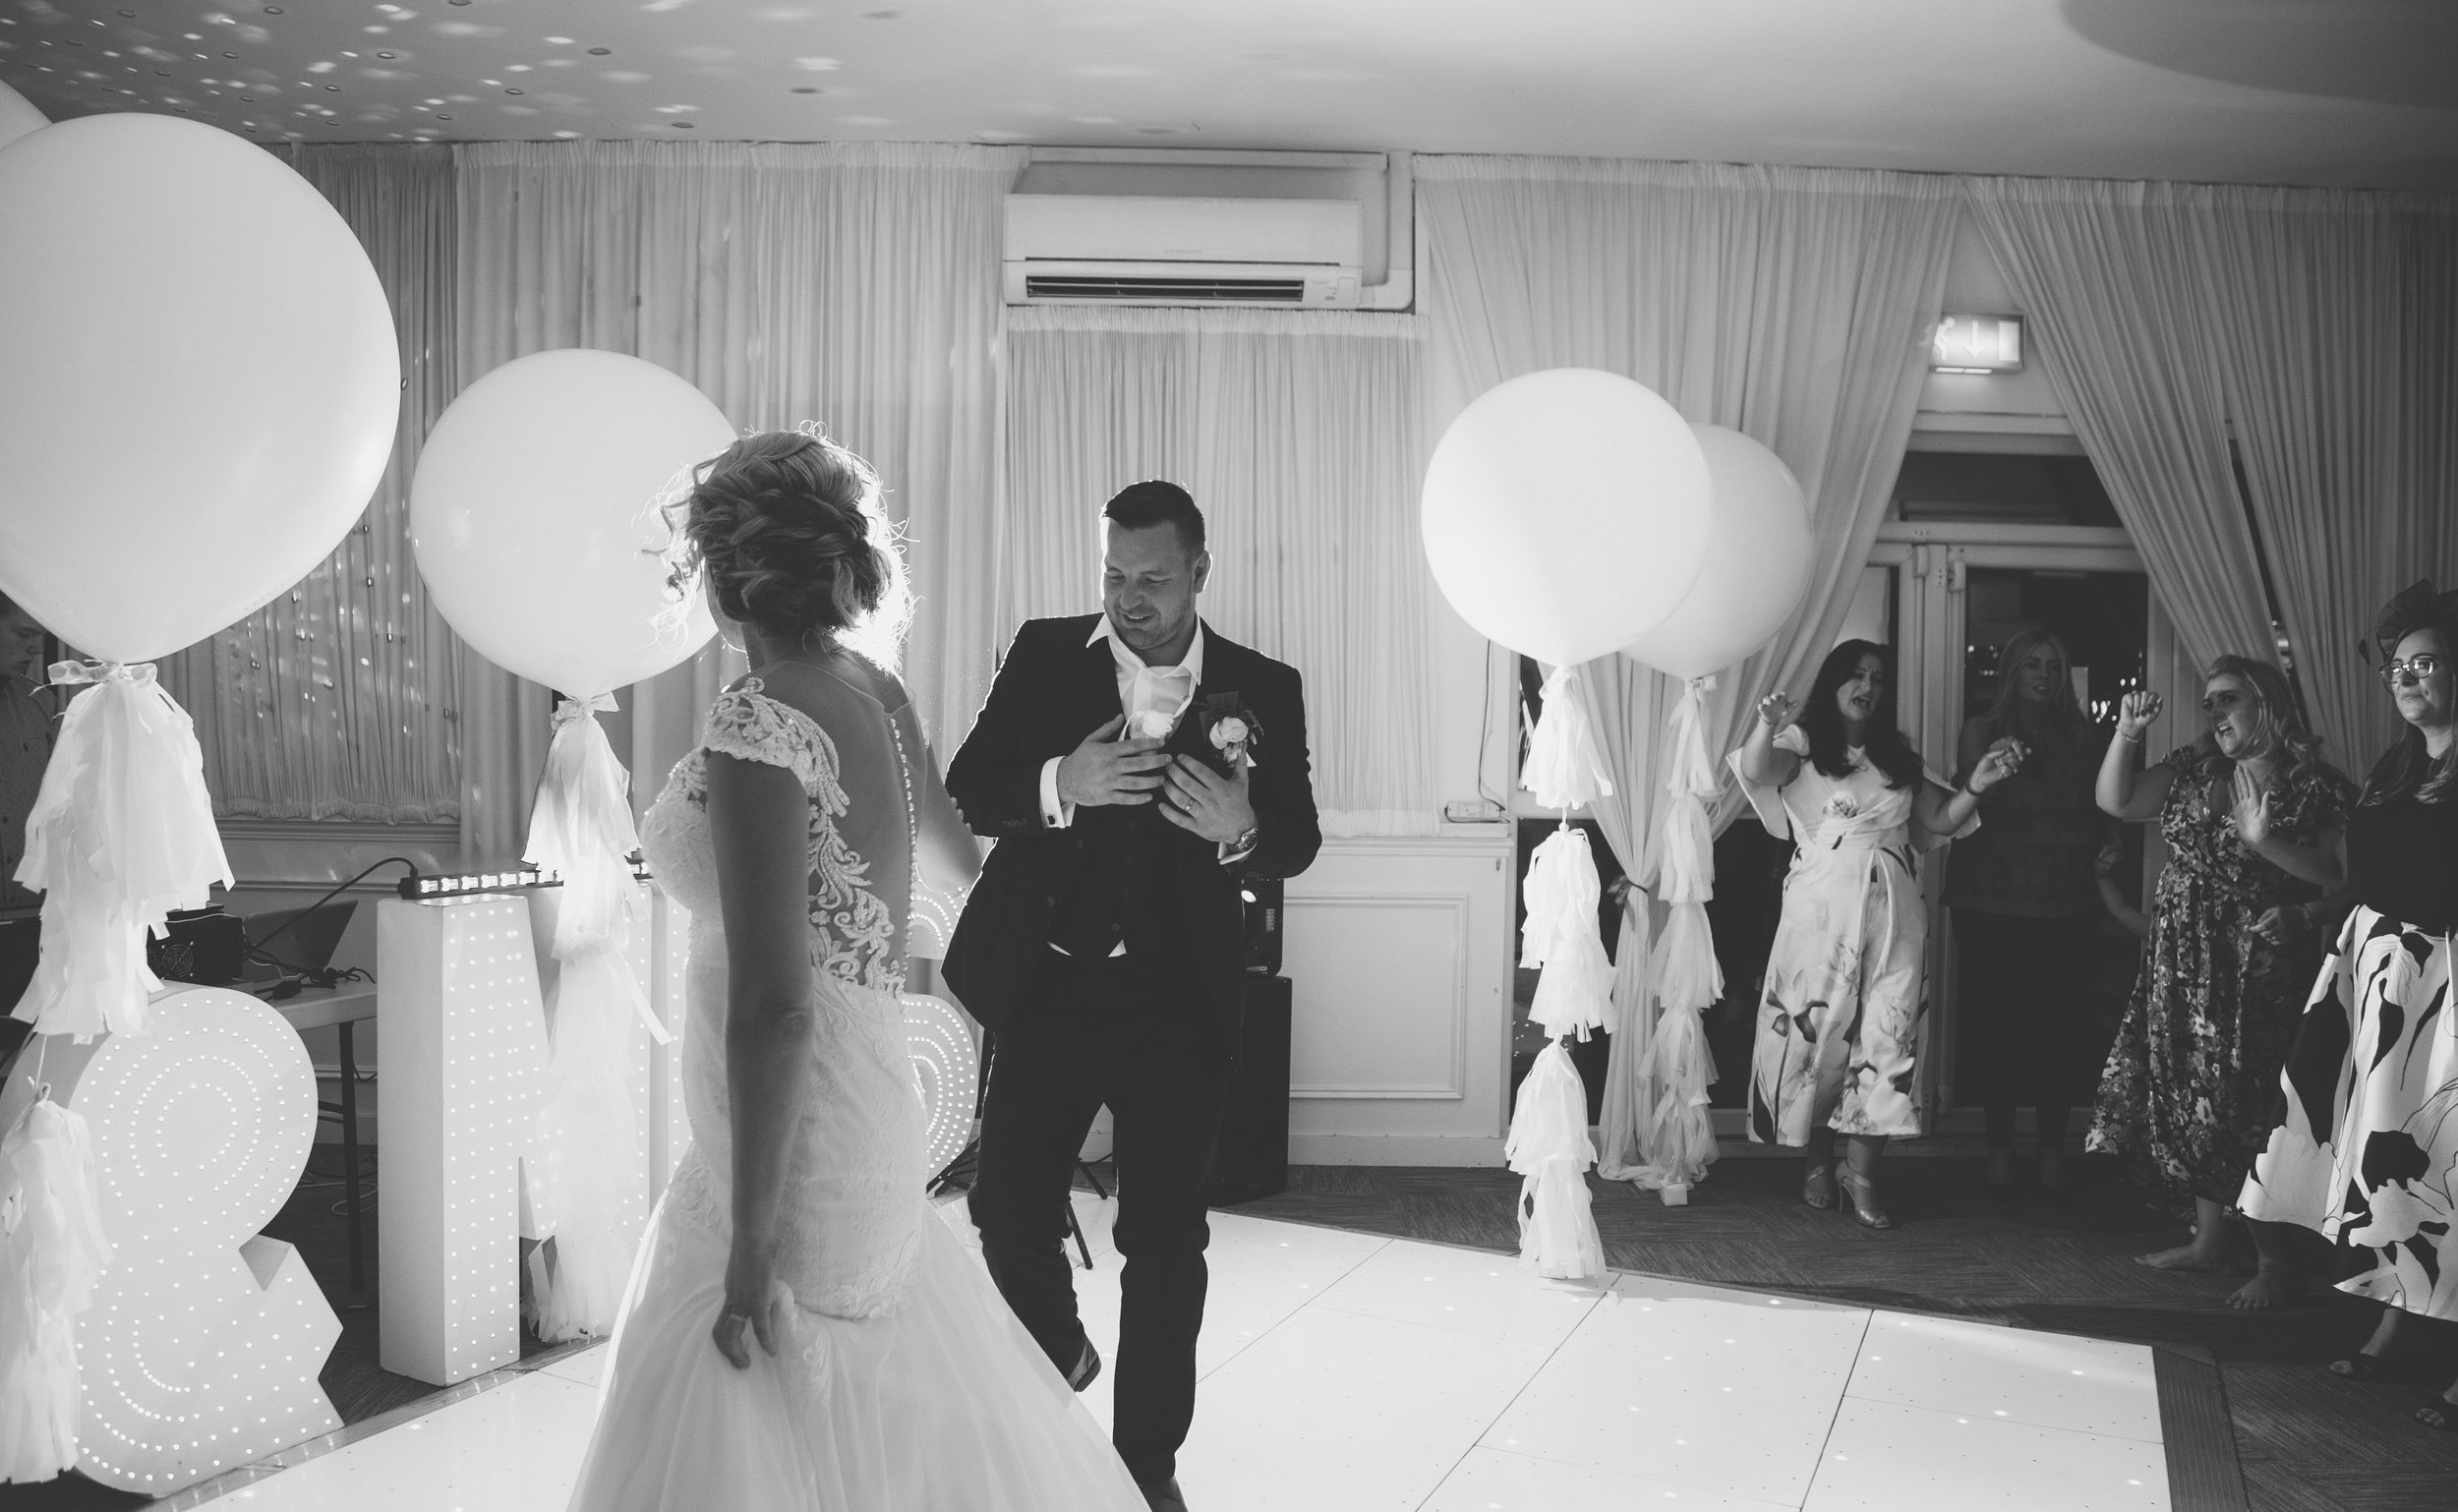 Wedding+photos+at+st+georges (38 of 39).jpg